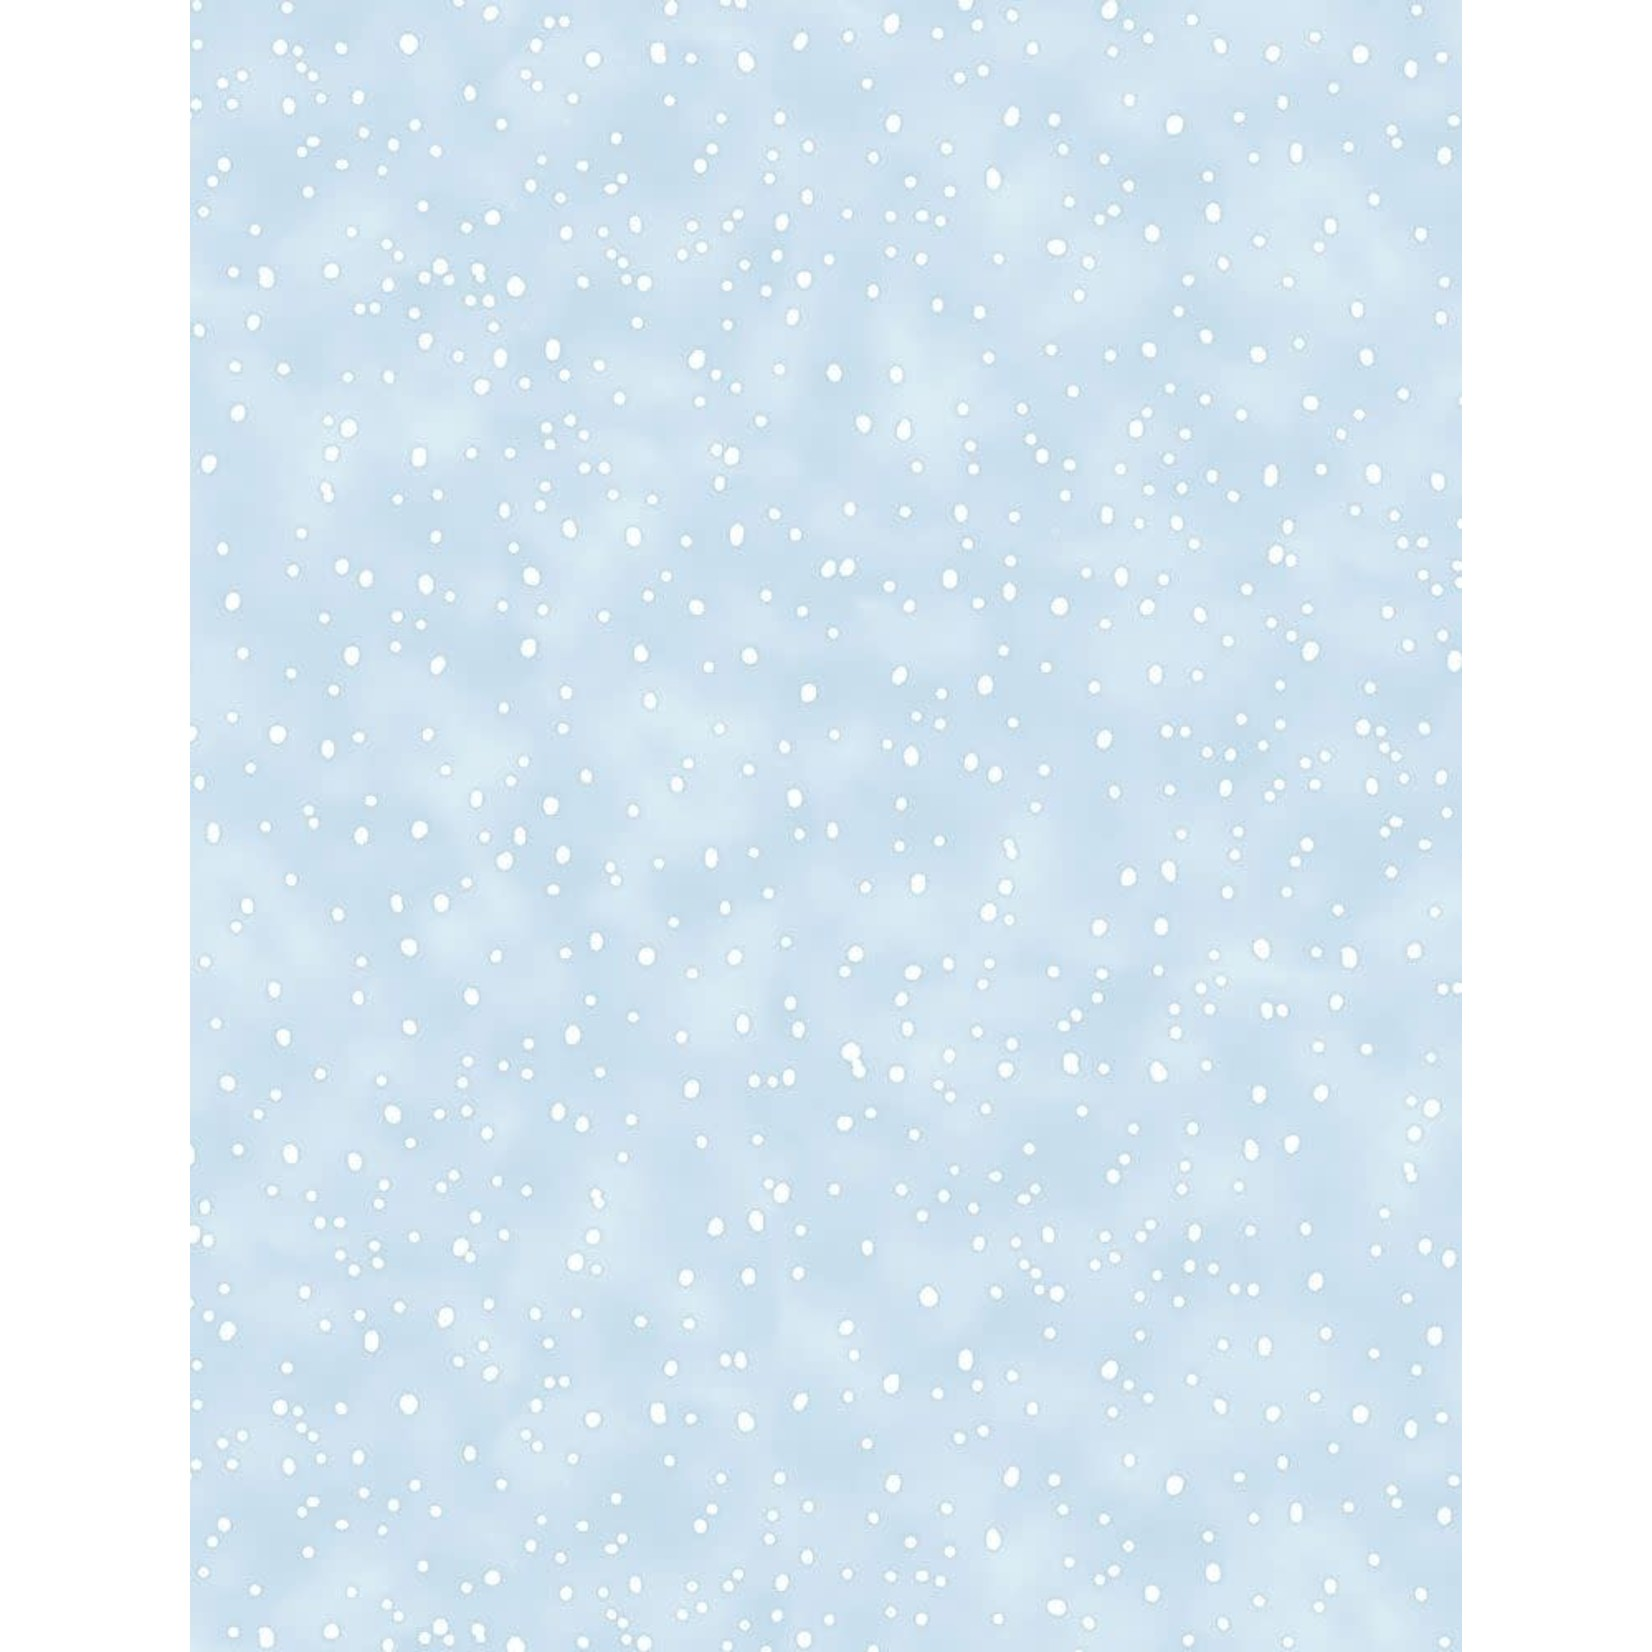 TIMELESS TREASURES Snow Day, Flannel, Snowing, Blue per cm or $20/m